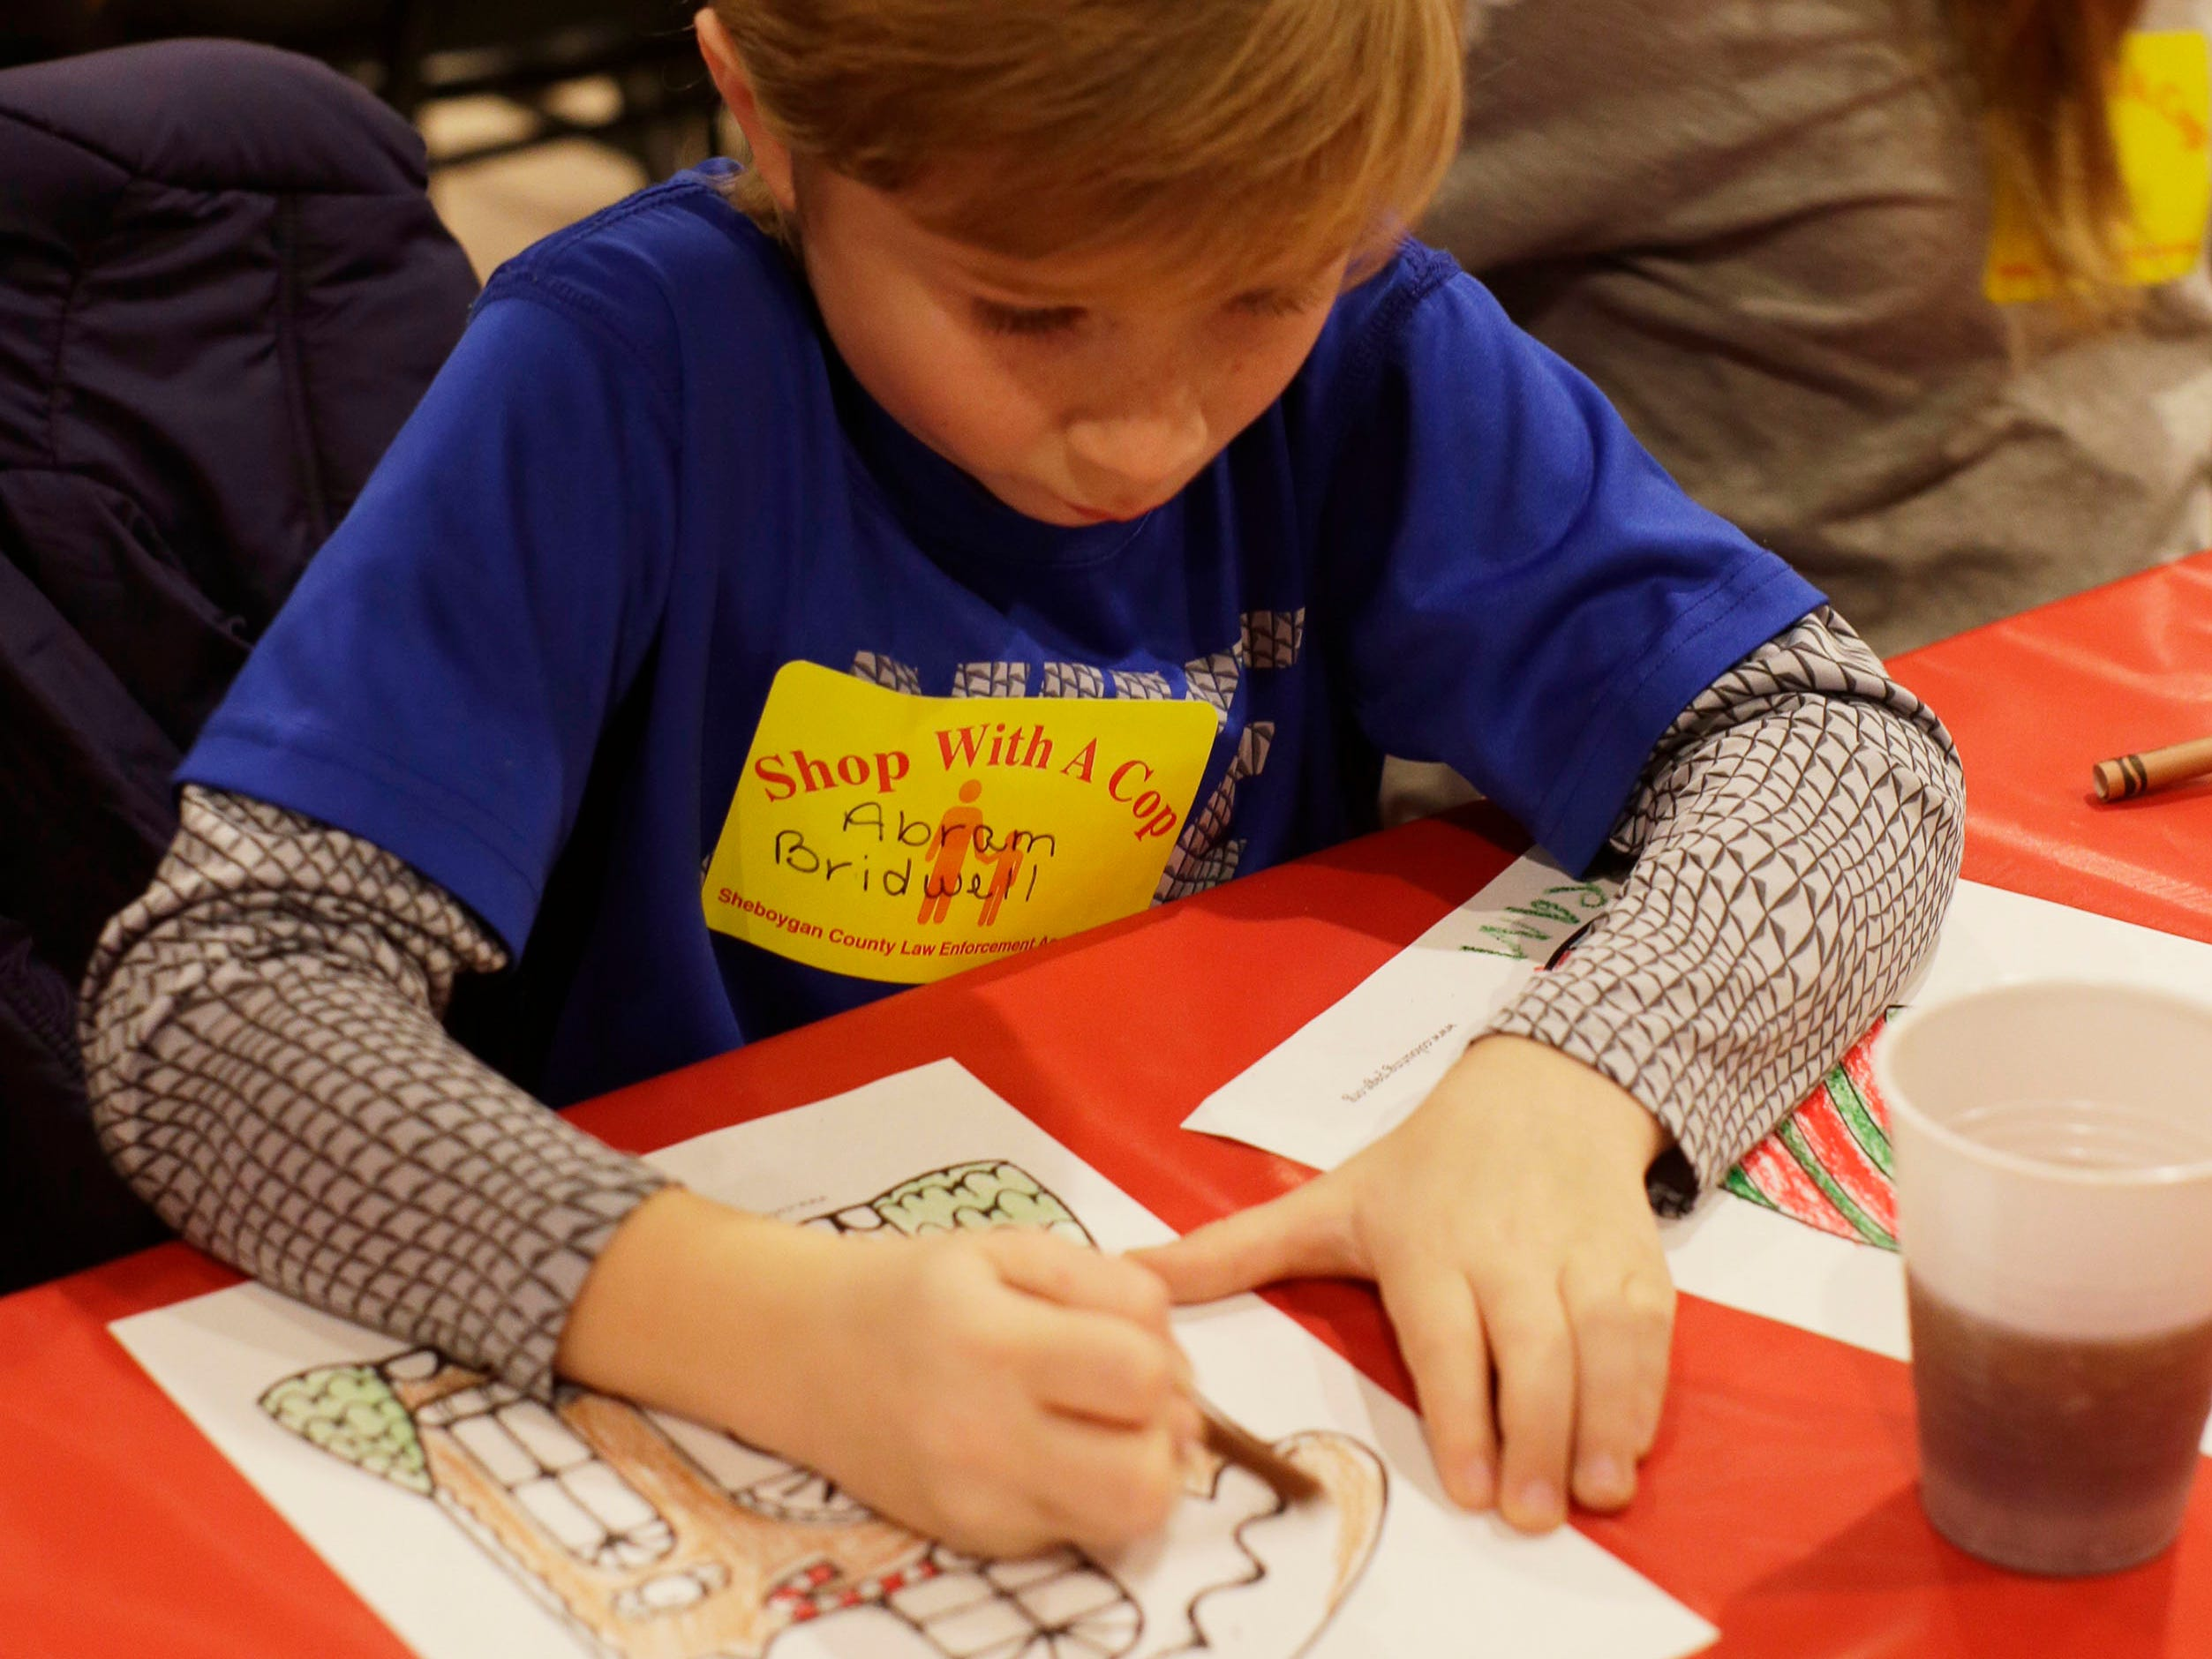 Abram Birdwell, 8, of Plymouth, Wis., colors a picture at Lakeshore Lanes during the start of Shop with a Cop, Tuesday, December 4, 2018, in Sheboygan, Wis. The program, in its 21st year, raises funds to give children a chance to buy holiday gifts that they otherwise might not receive.